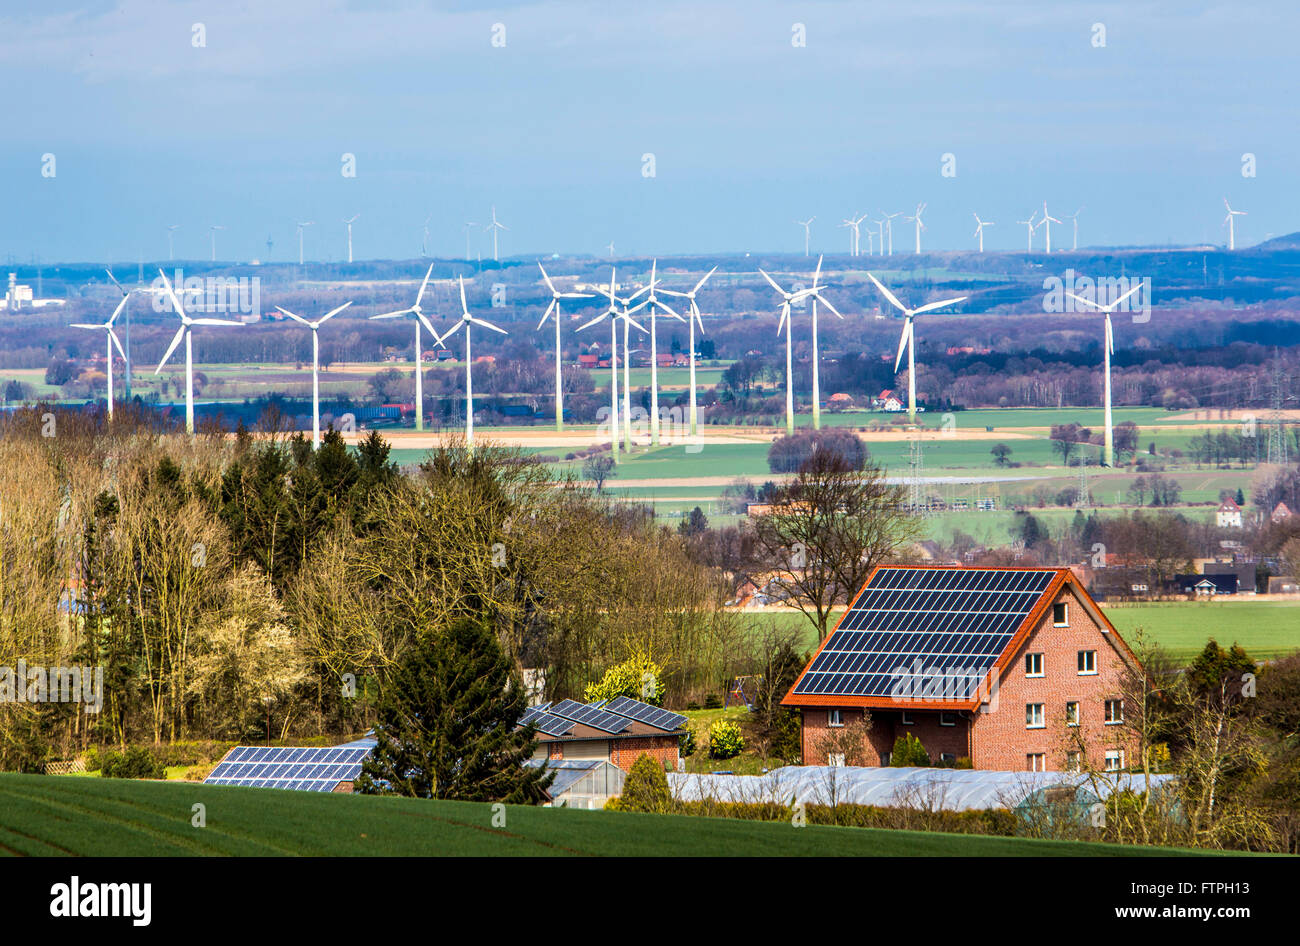 Private house with solar energy plant on the roof, wind park